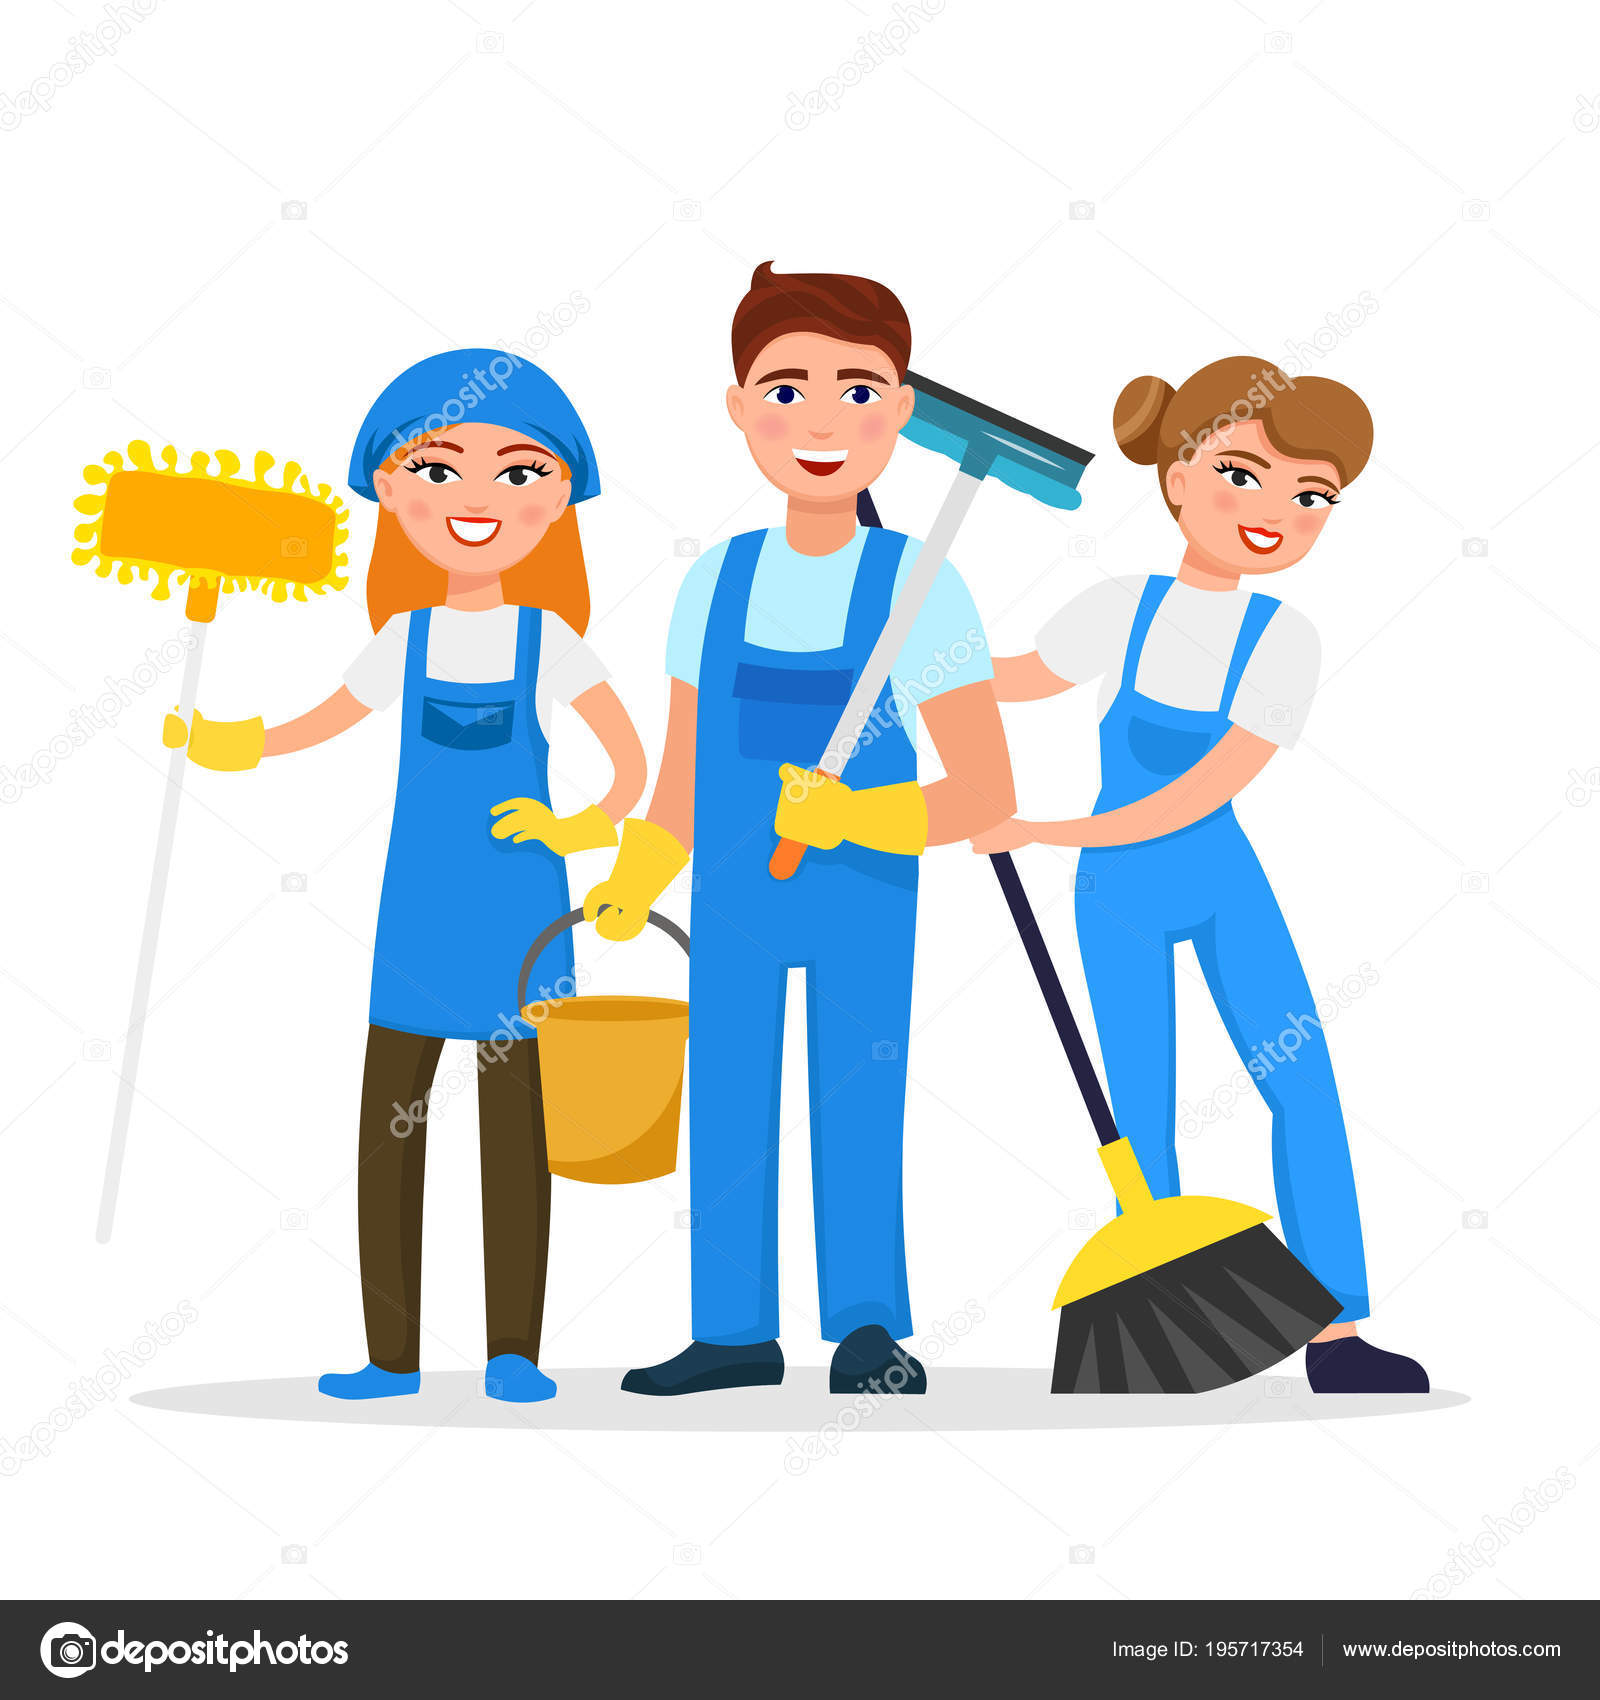 Hotel Housekeeping Services: Cleaning Service Staff Smiling Cartoon Characters Isolated